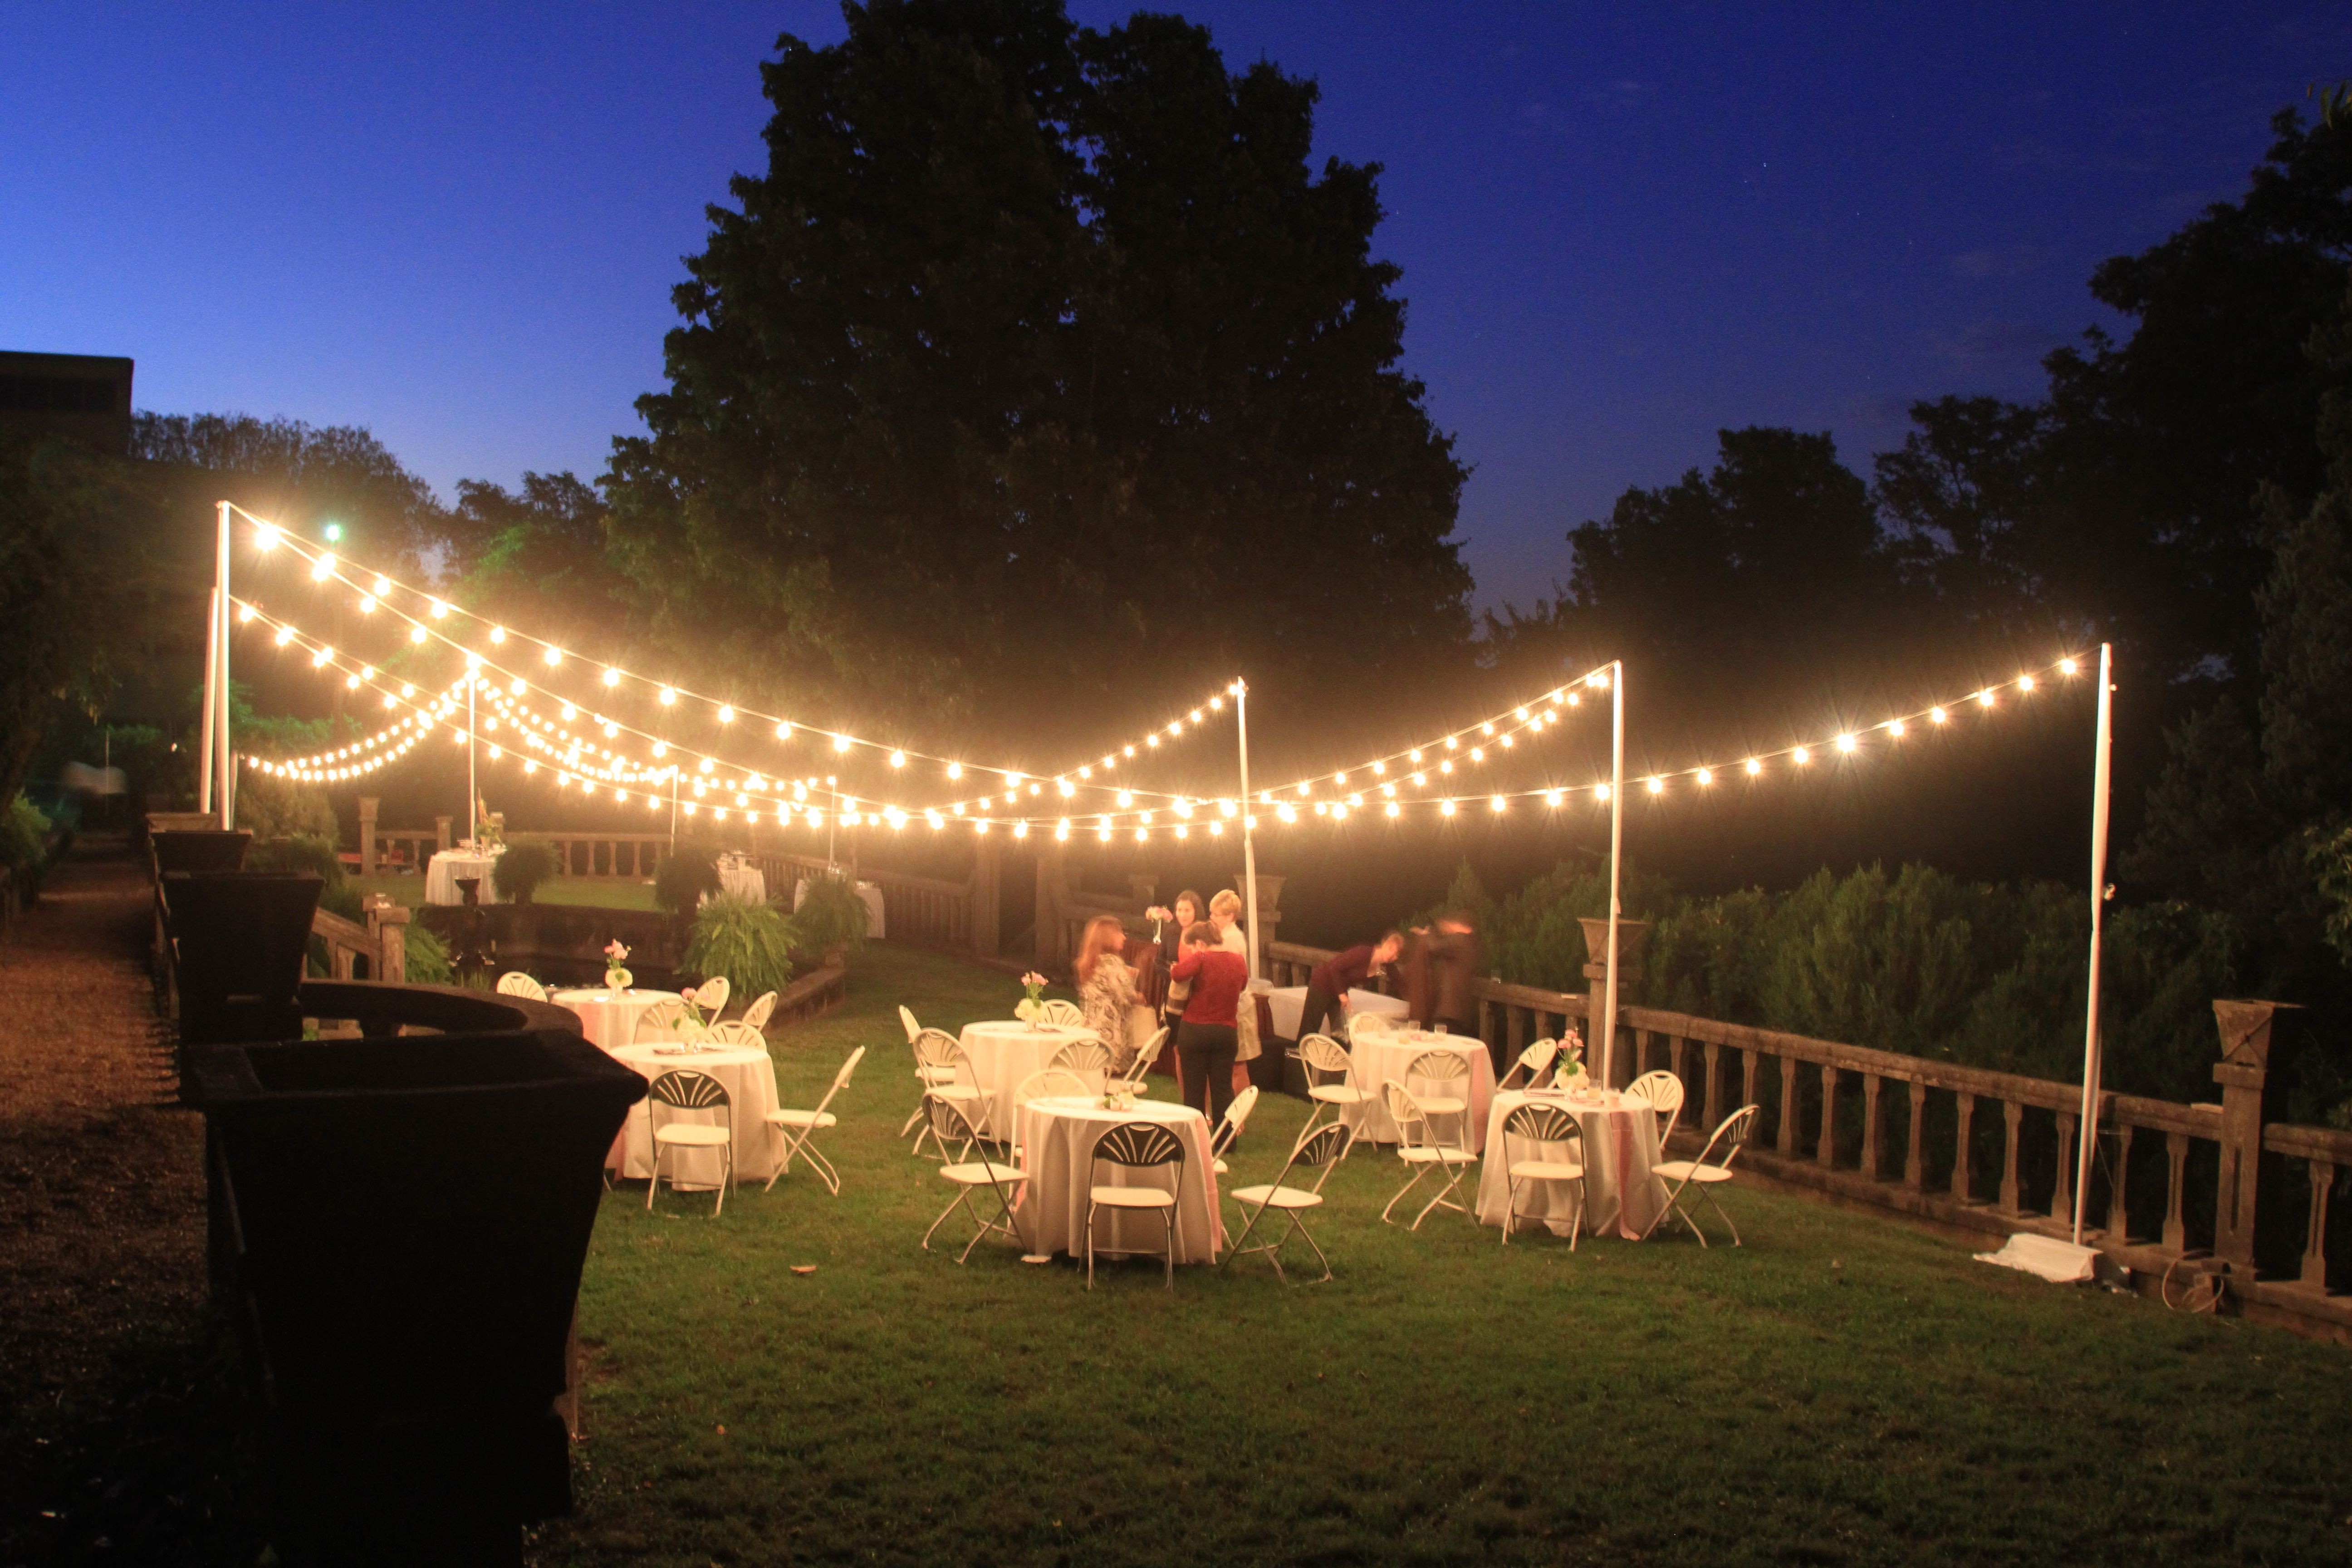 Outdoor Lights For Wedding – Outdoor Lighting Ideas For Most Current Outdoor Lanterns For Wedding (View 15 of 20)